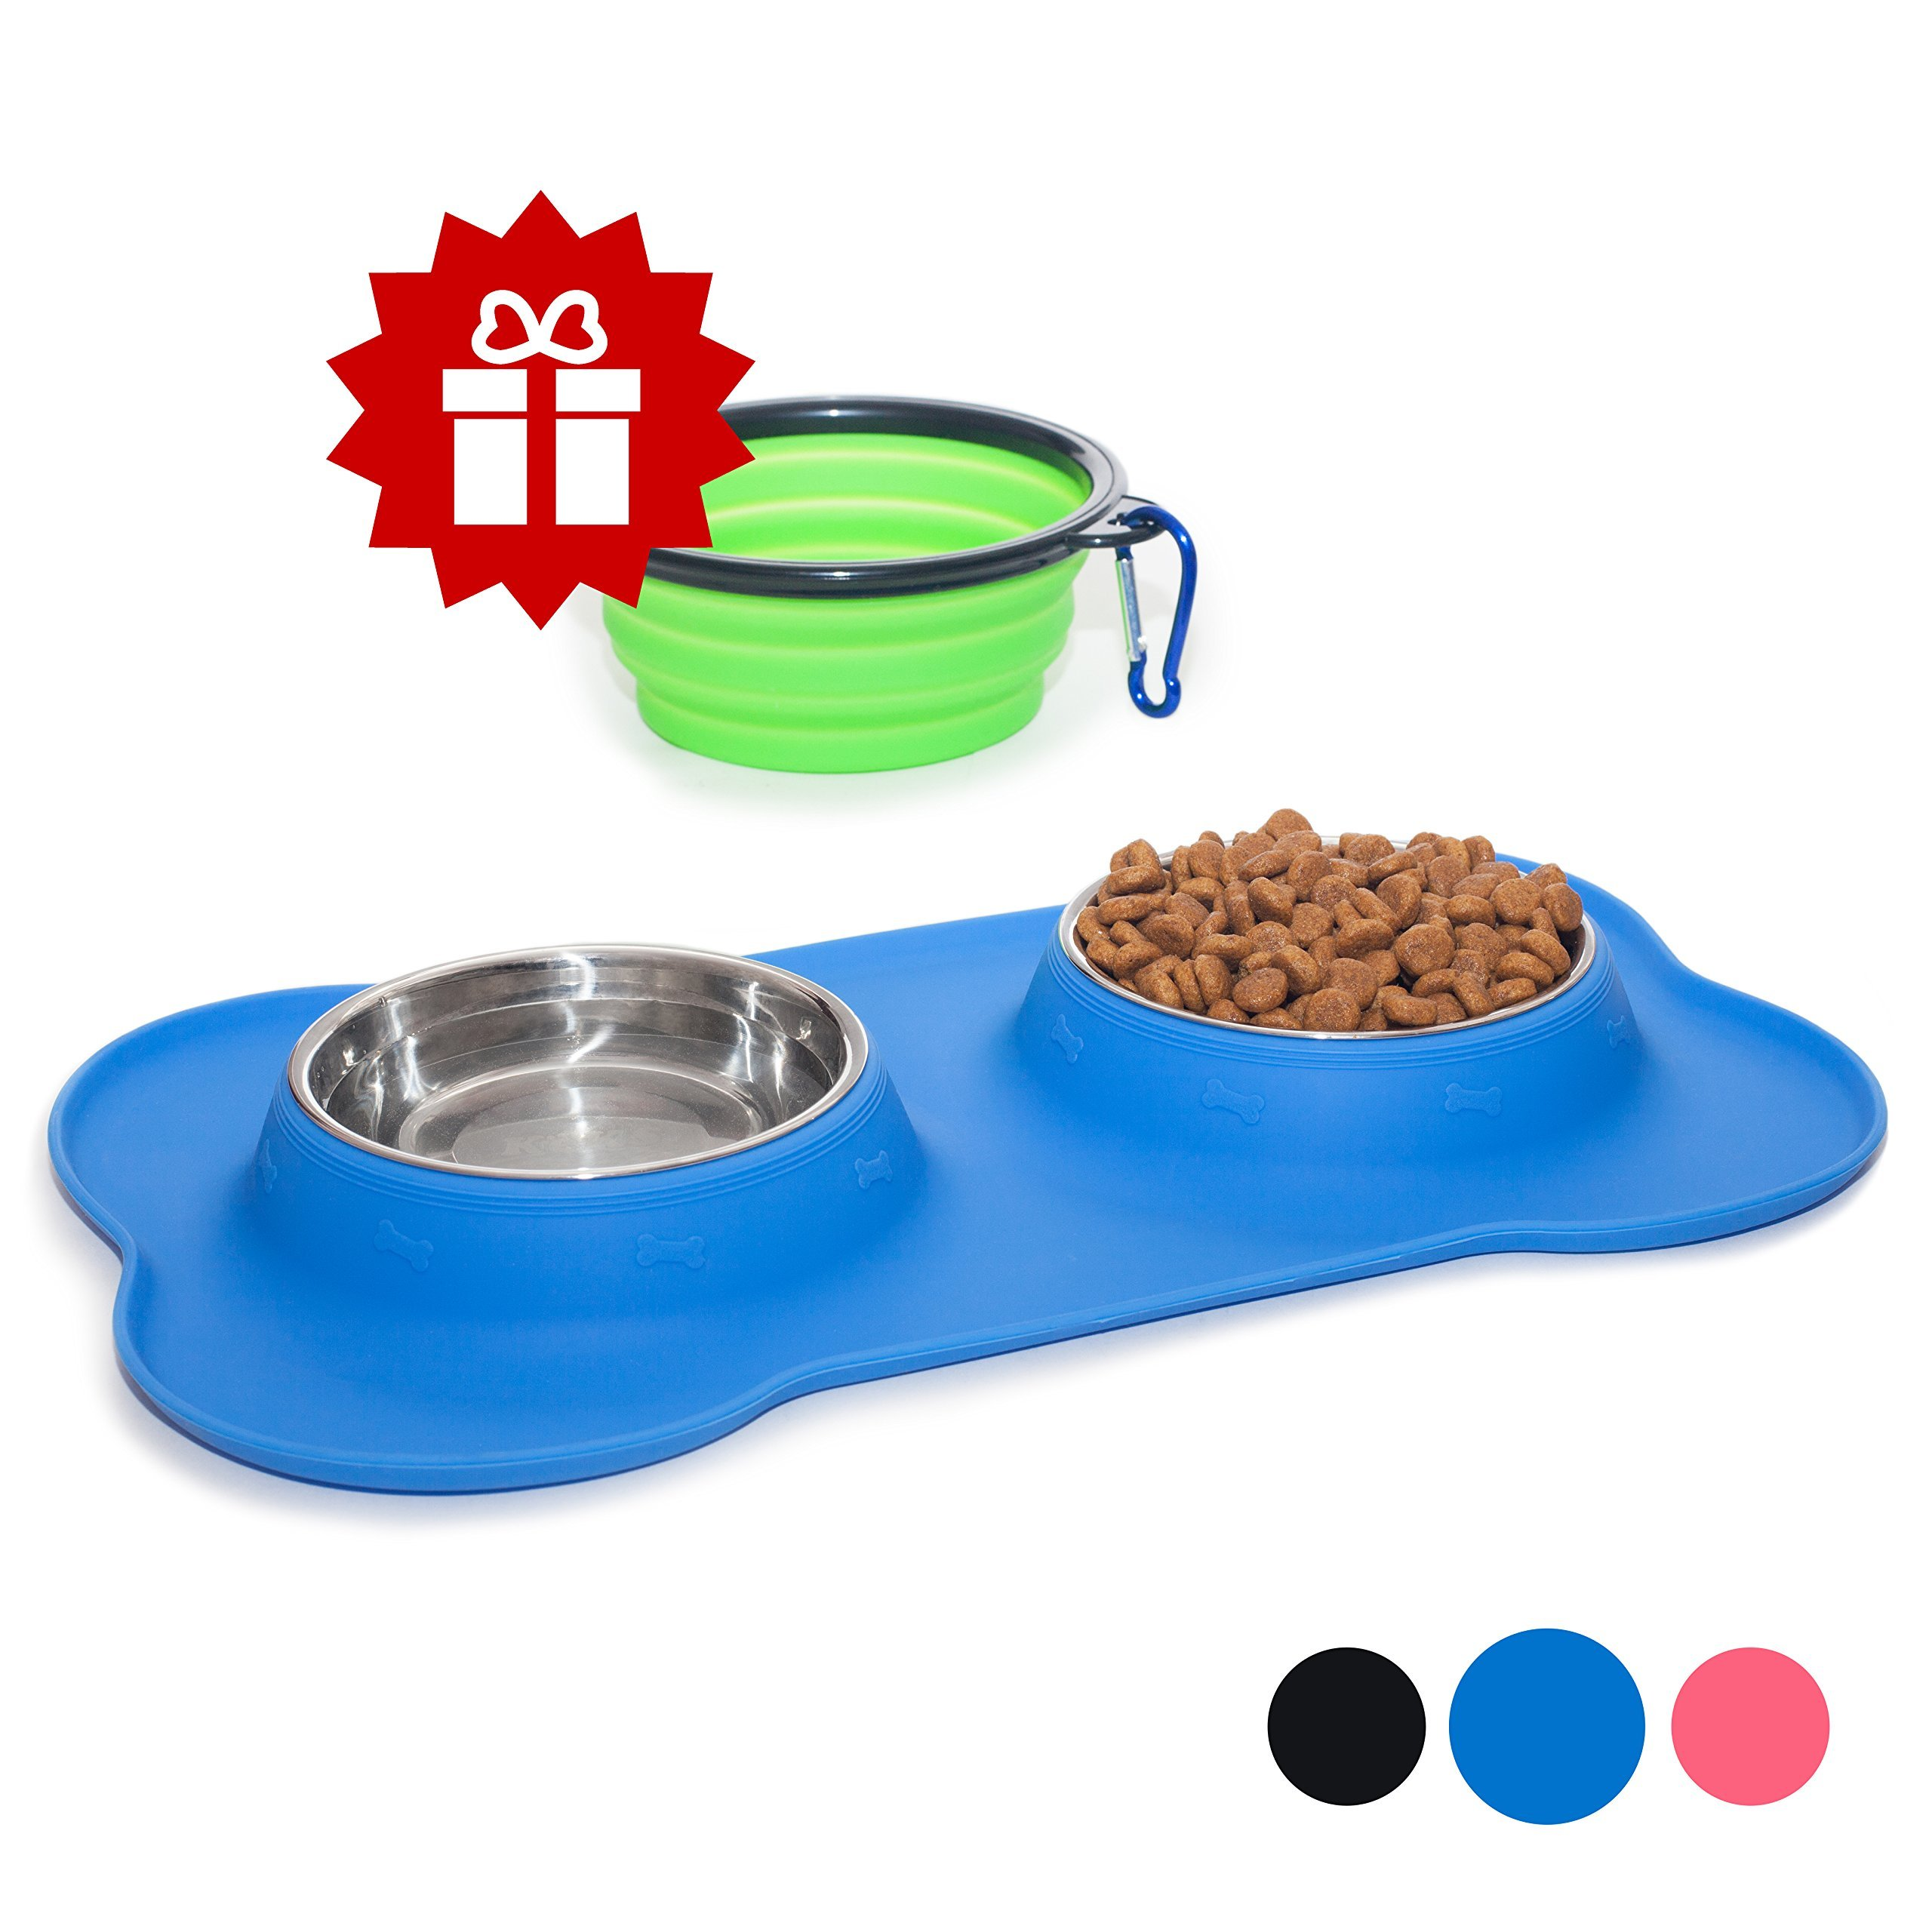 KEKS Set of 2 Stainless Steel Bowls with Non-Skid & No Spill Silicone Stand f...